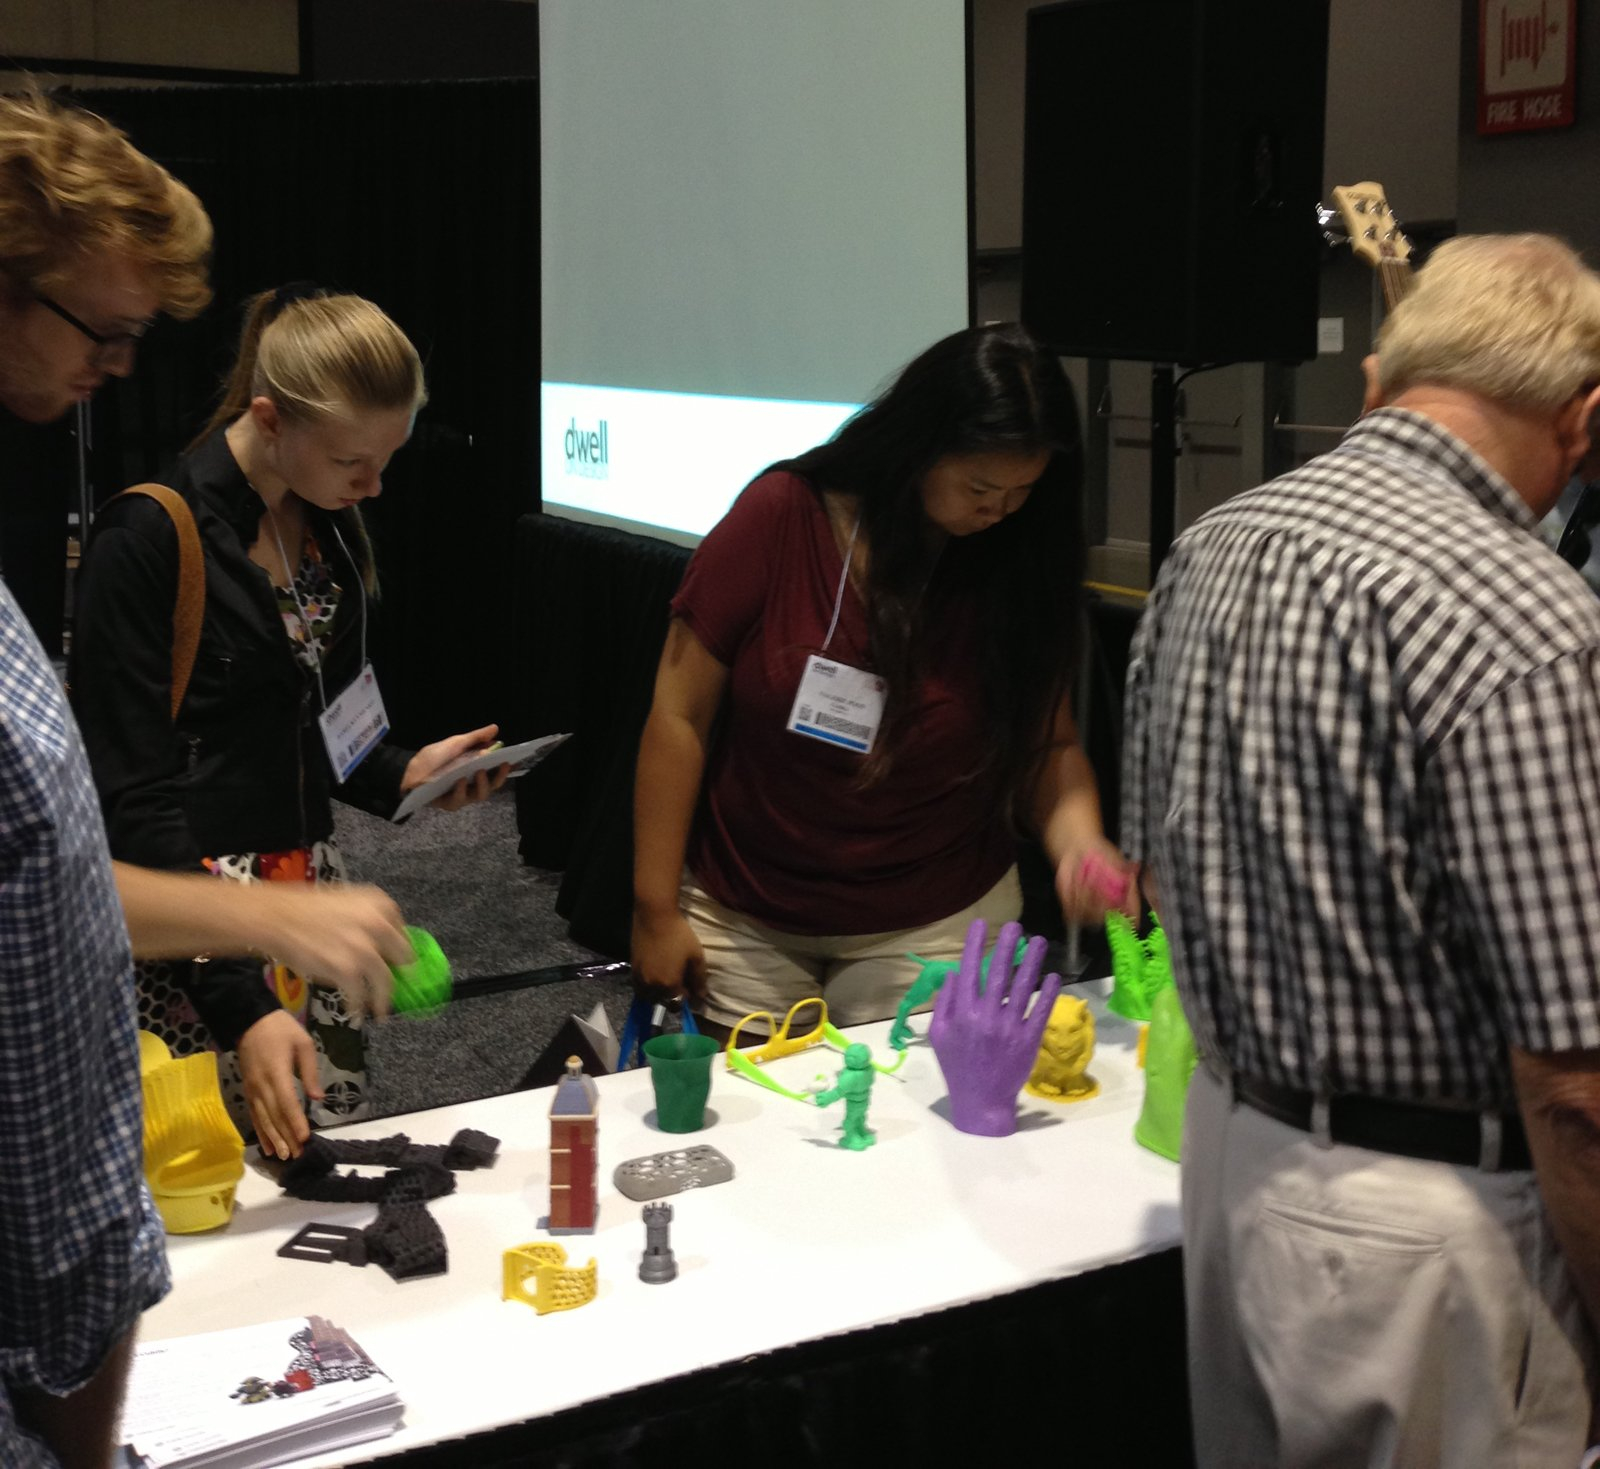 Dwell on Design visitors inspect objects printed on the Cube, a 3D printer.  Photo 2 of 3 in Recap: 3D Printing Demo by Cubify